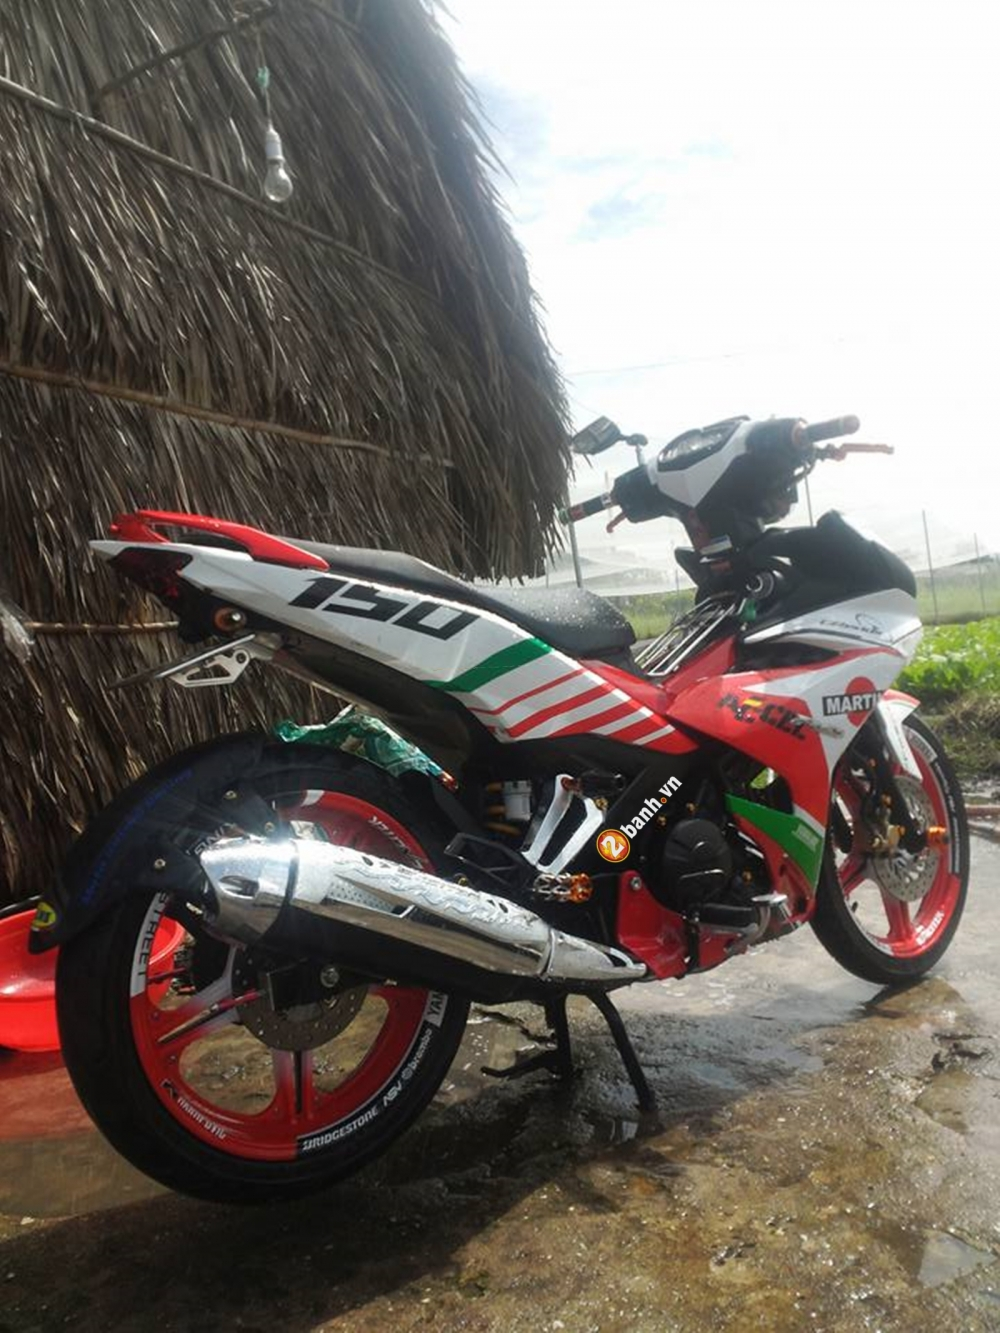 Exciter 150 nha tranh don nhe - 3